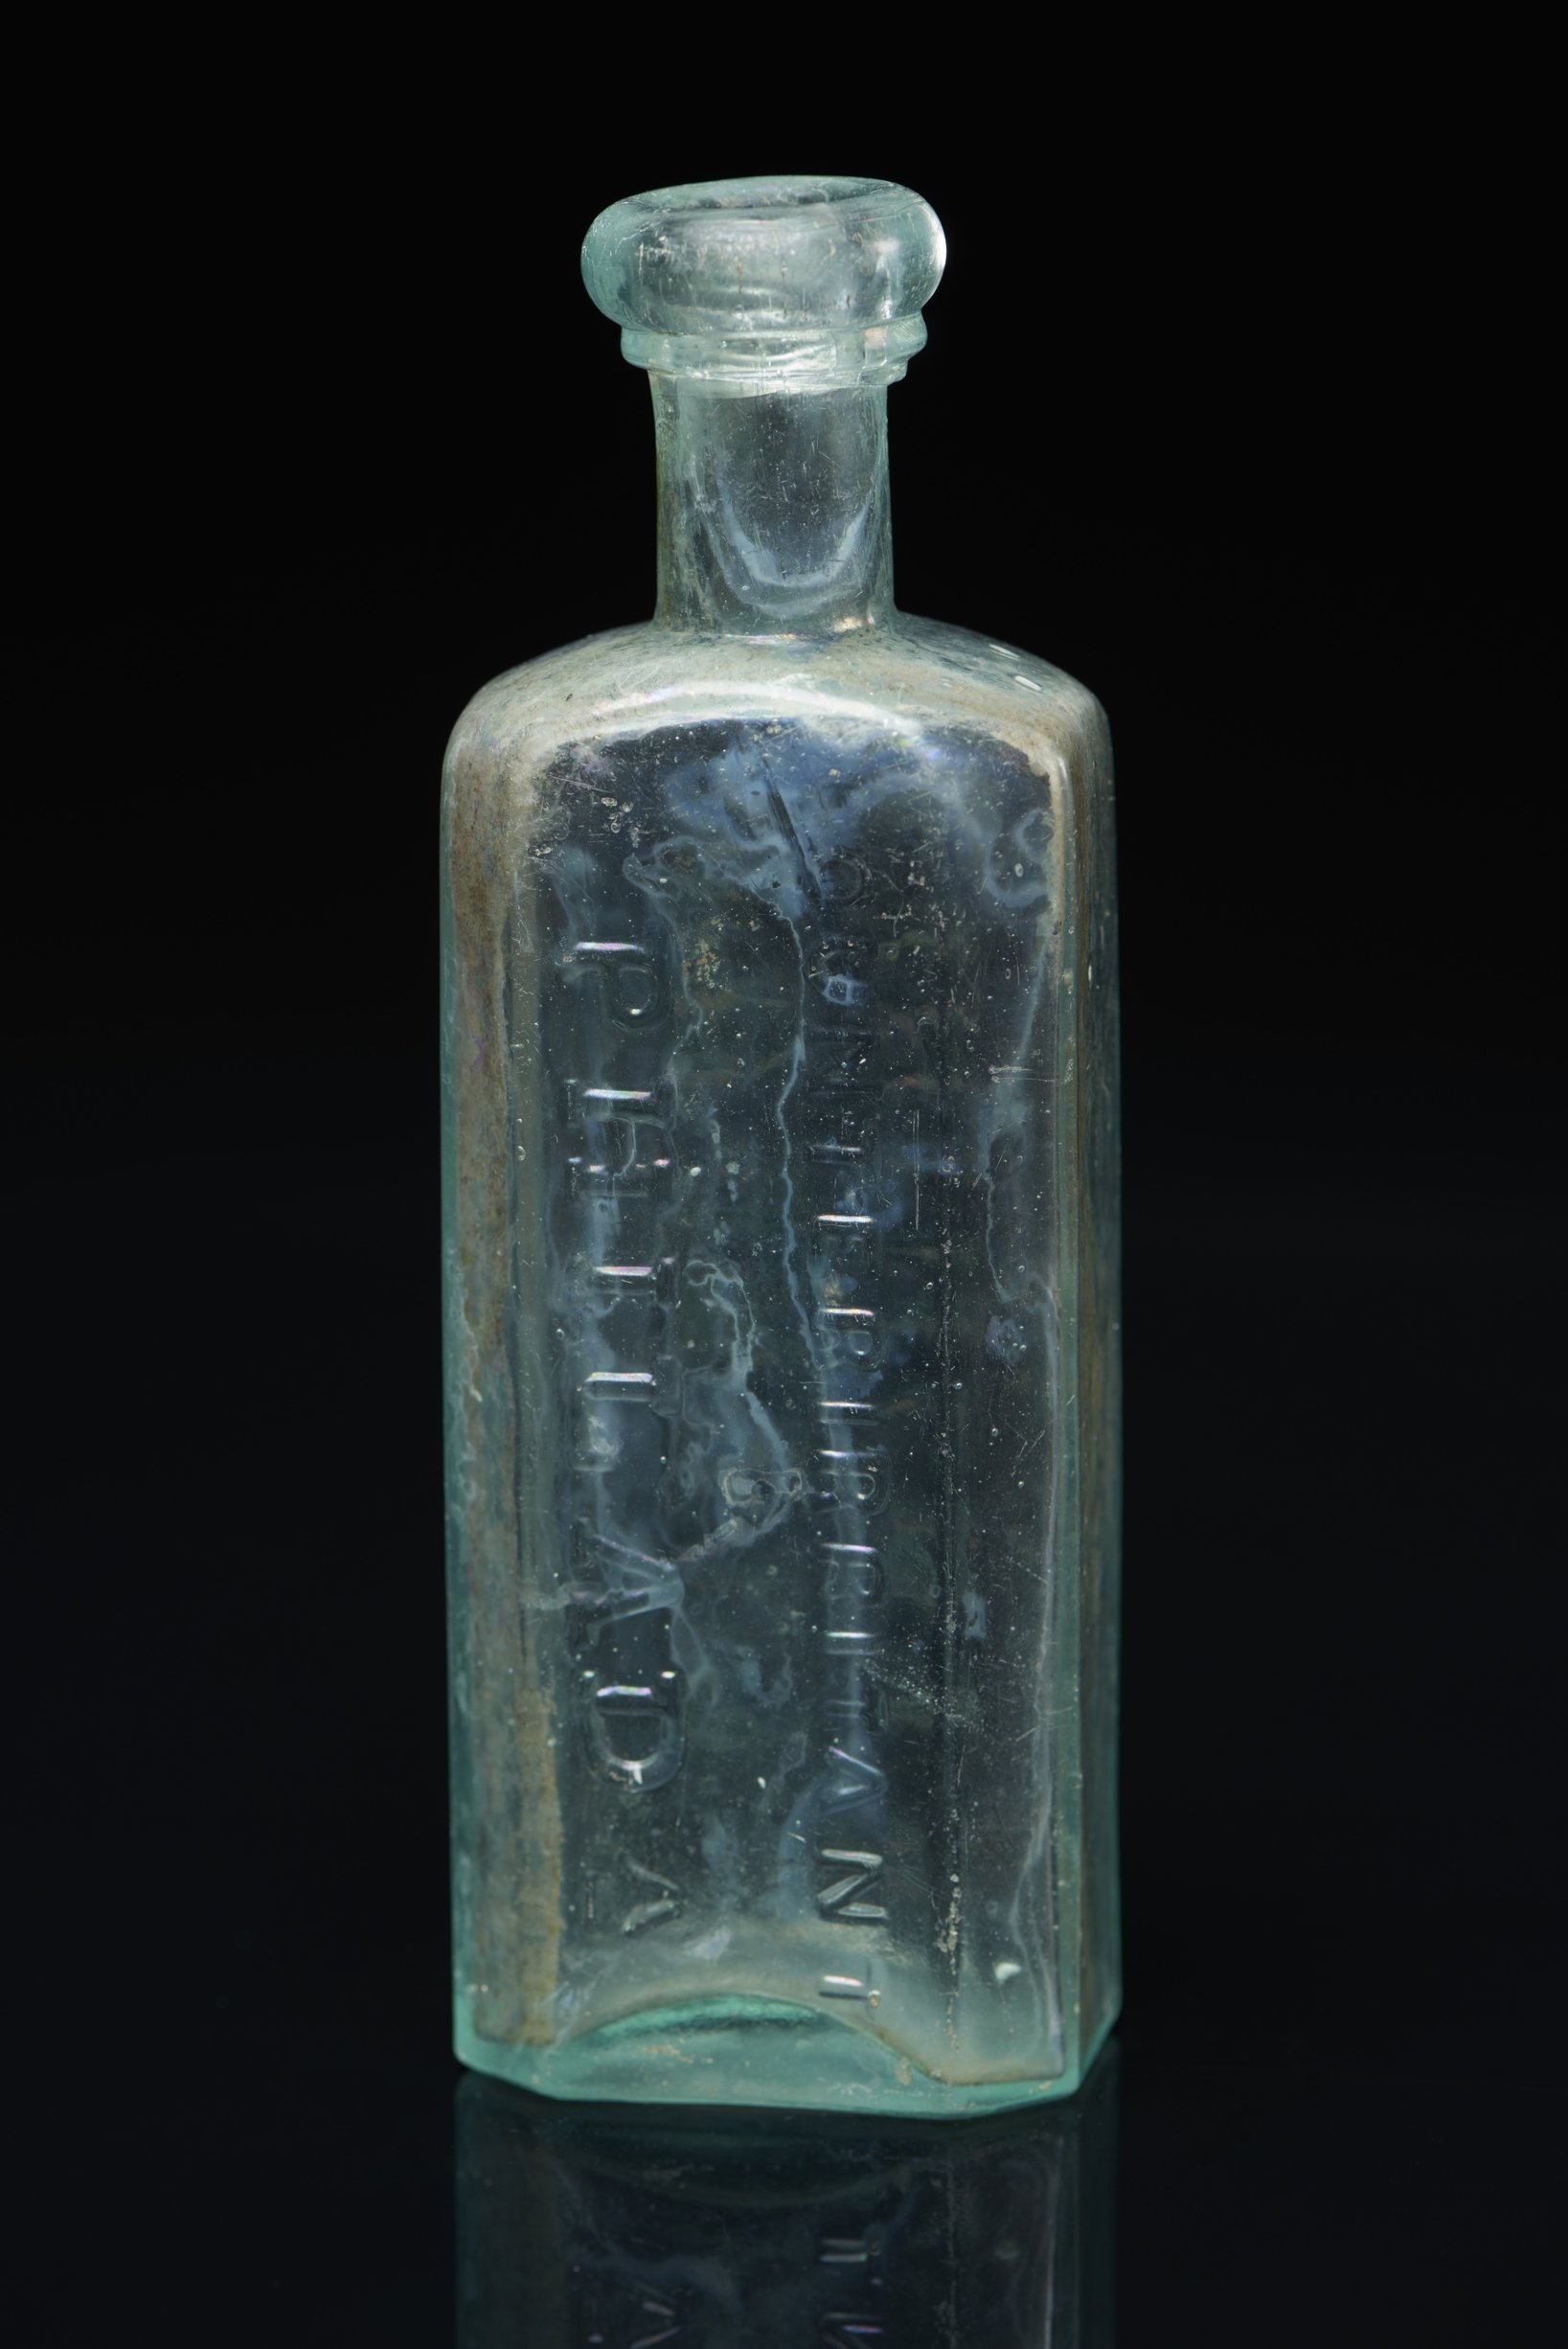 Dr. D. Jayne Liniment or Counterirritant Bottle from the Iowa and Sac and Fox Mission, 14DP384 - 2